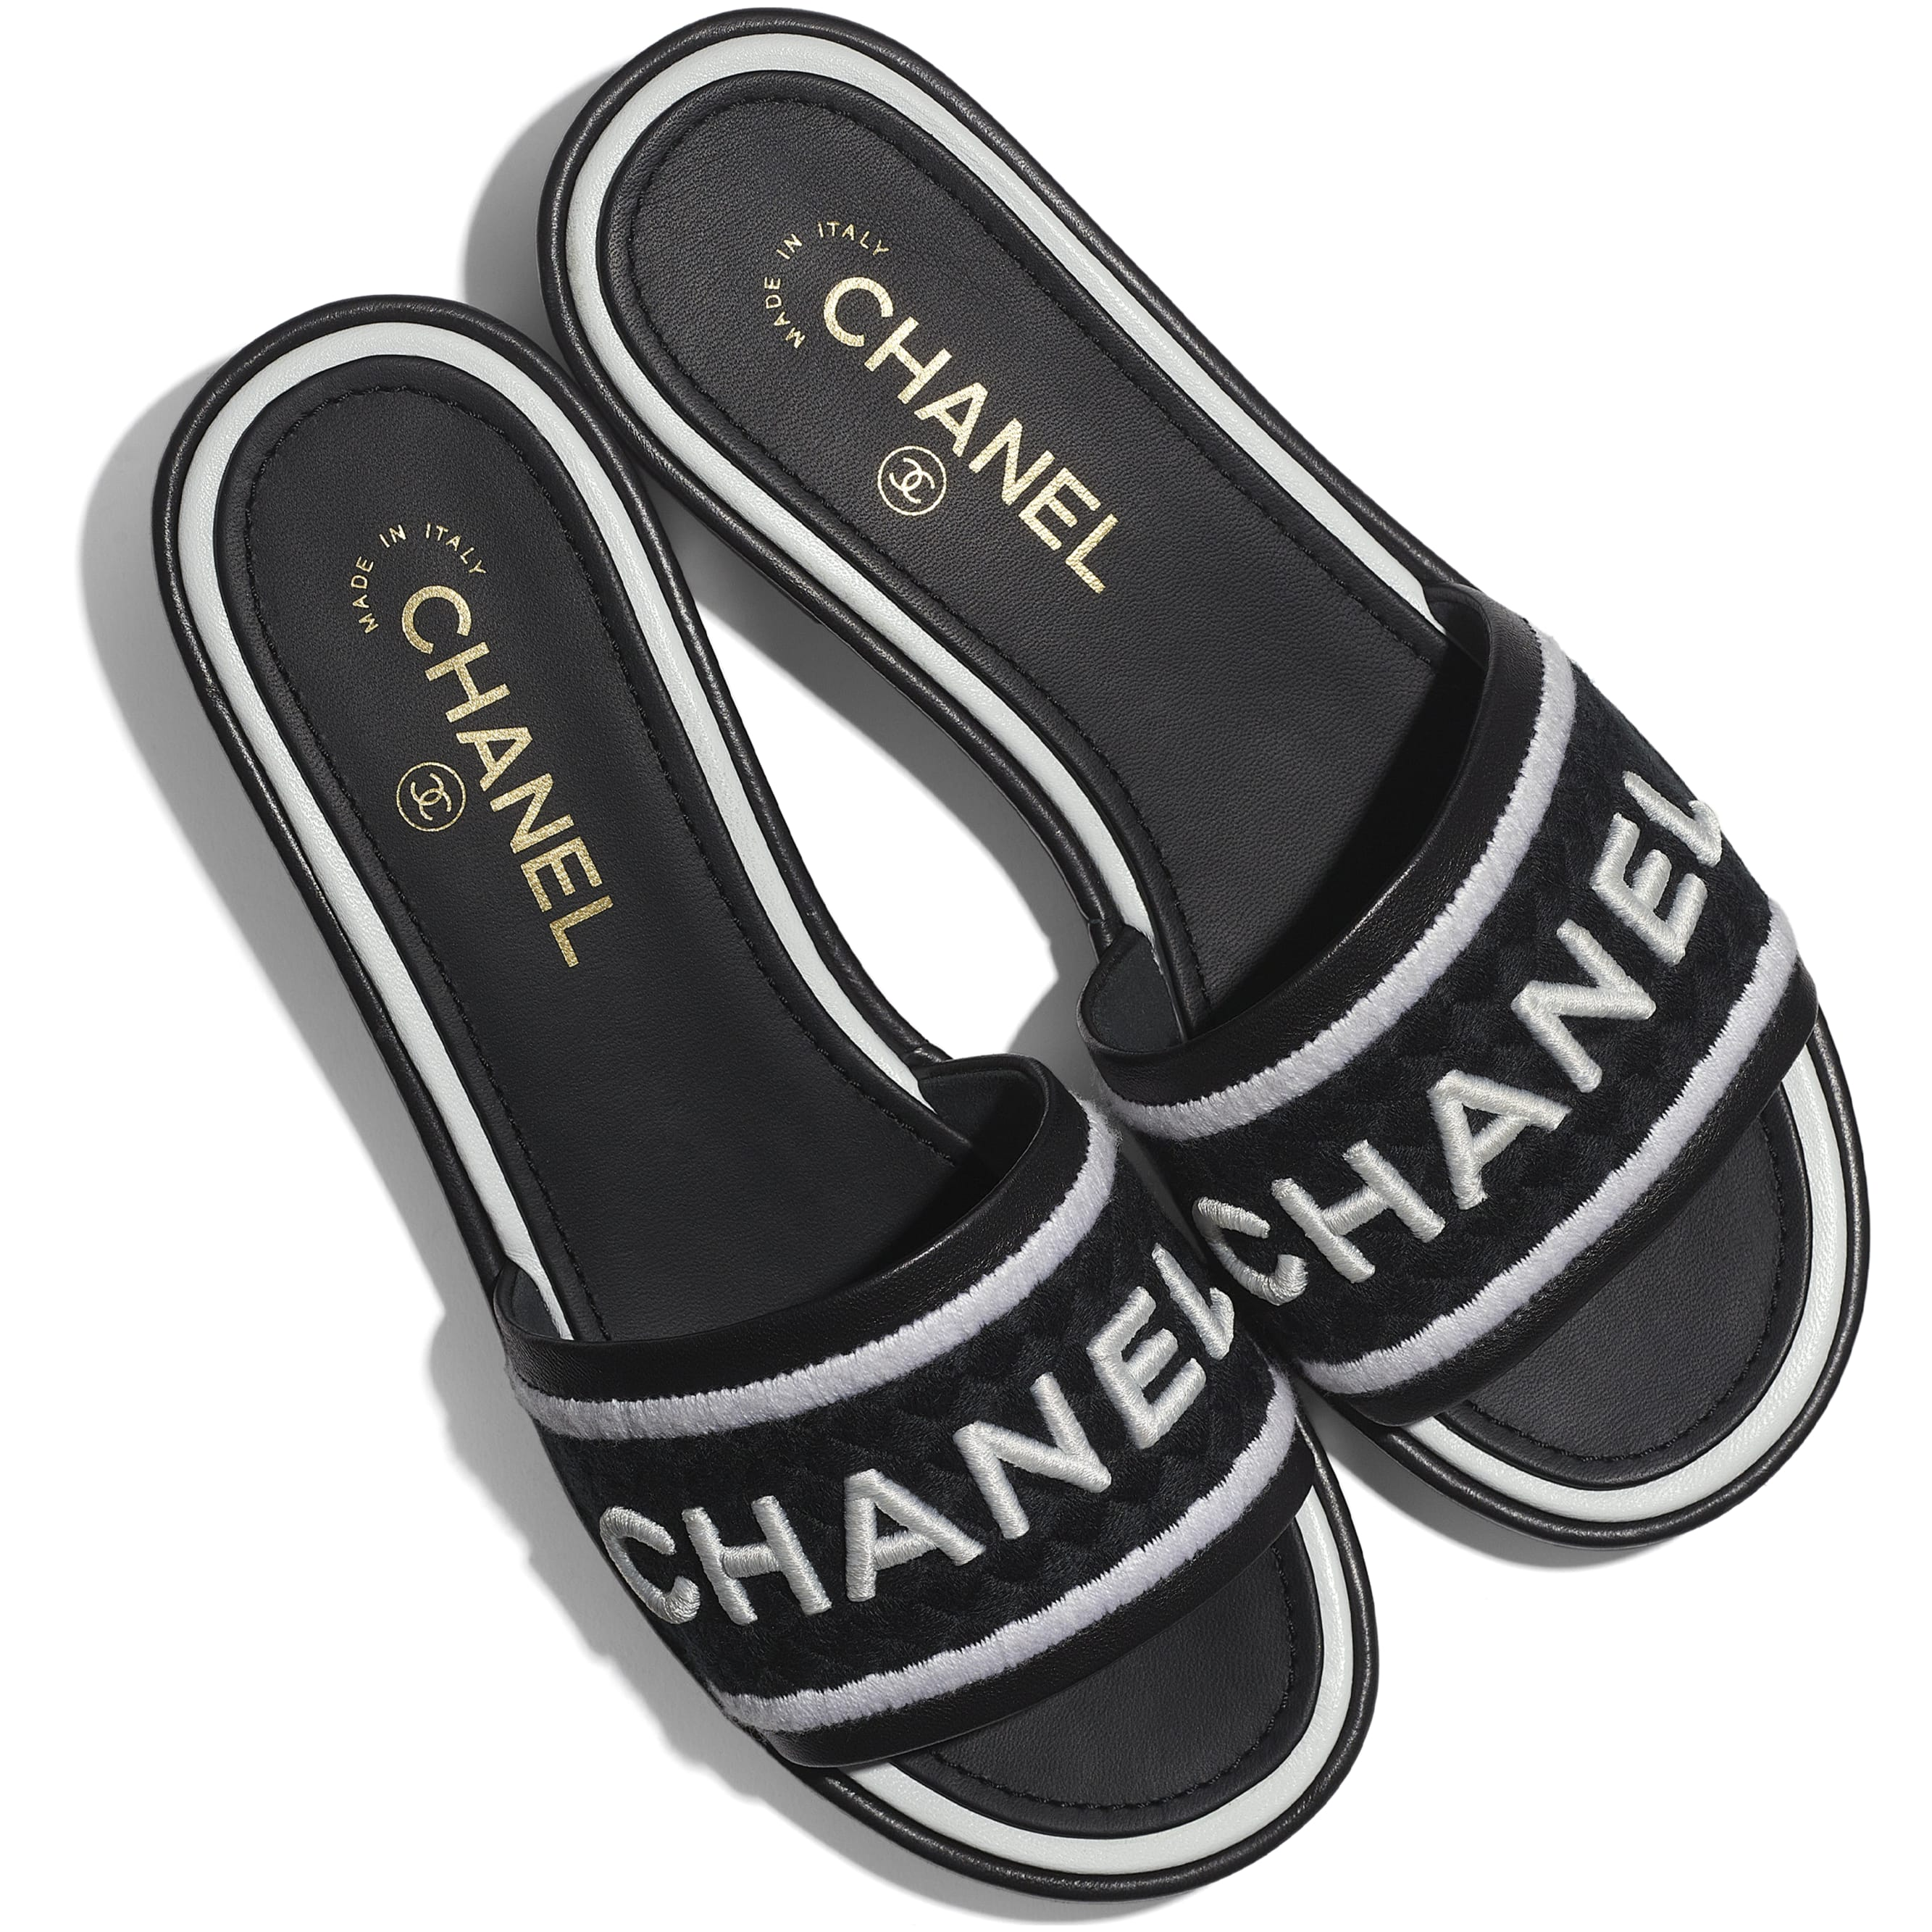 Mules - Black & White - Lambskin & Embroideries - CHANEL - Extra view - see standard sized version